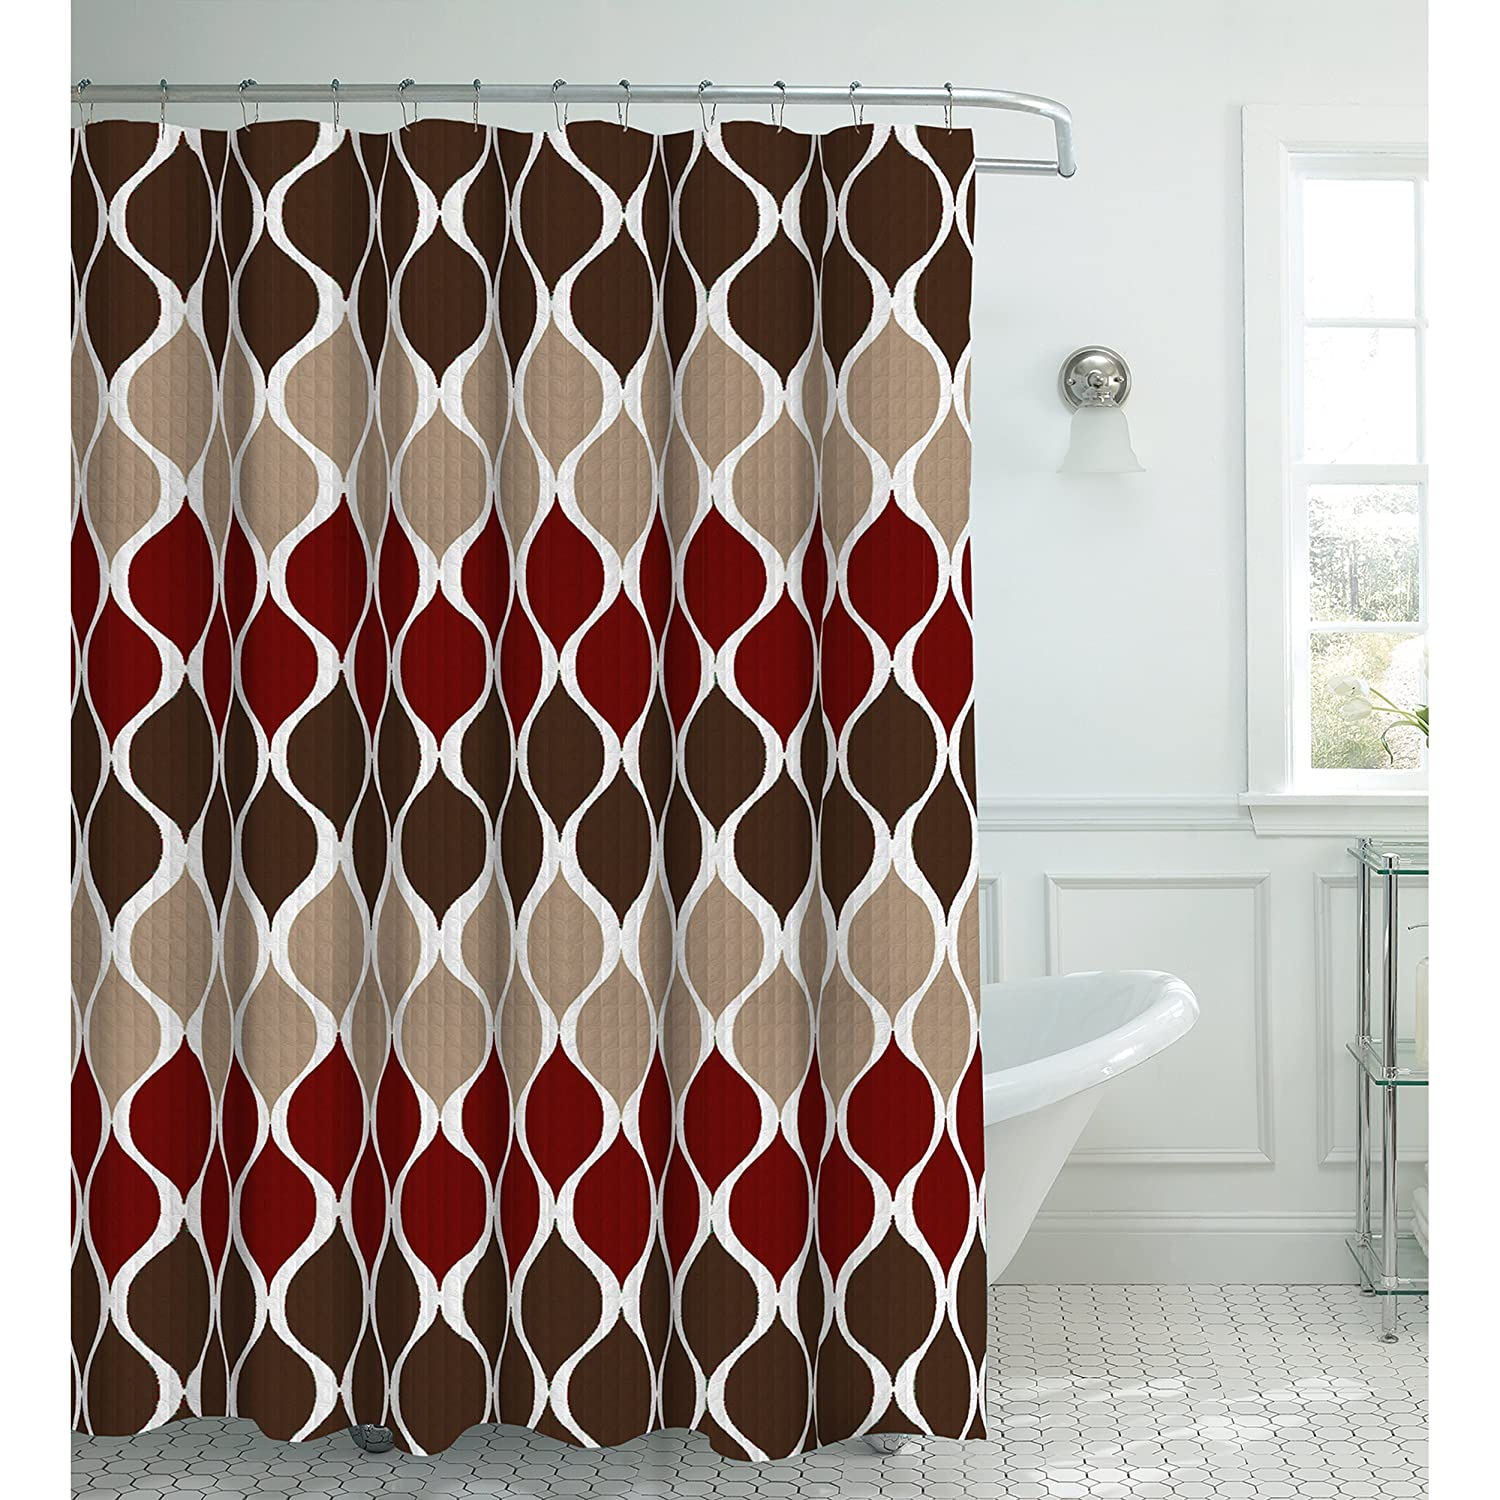 burgundy shower curtain sets. amazon.com: clarisse faux linen textured 70 x 72 in. shower curtain with 12 metal rings, espresso: home \u0026 kitchen burgundy sets